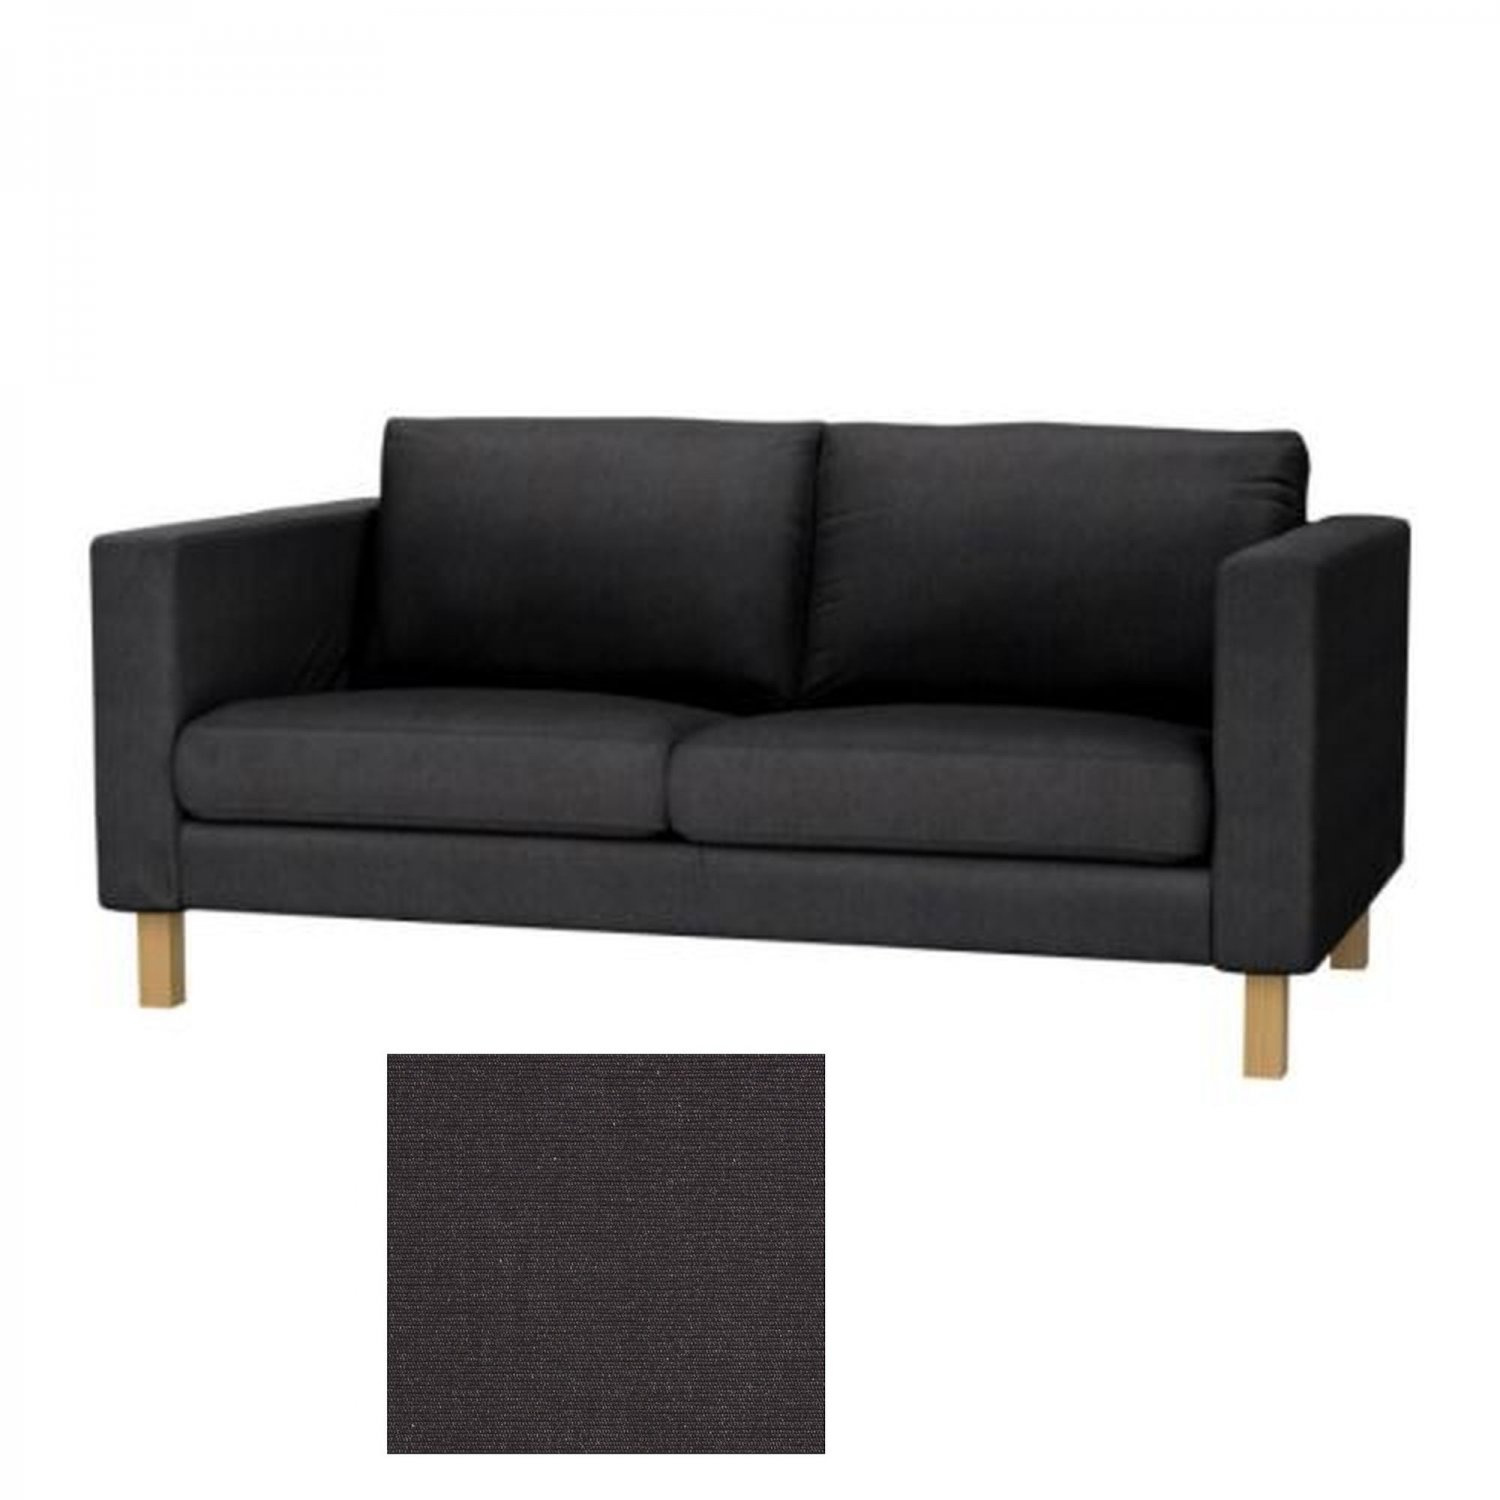 Ikea karlstad 2 seat sofa slipcover loveseat cover sivik dark gray grey Ikea karlstad sofa